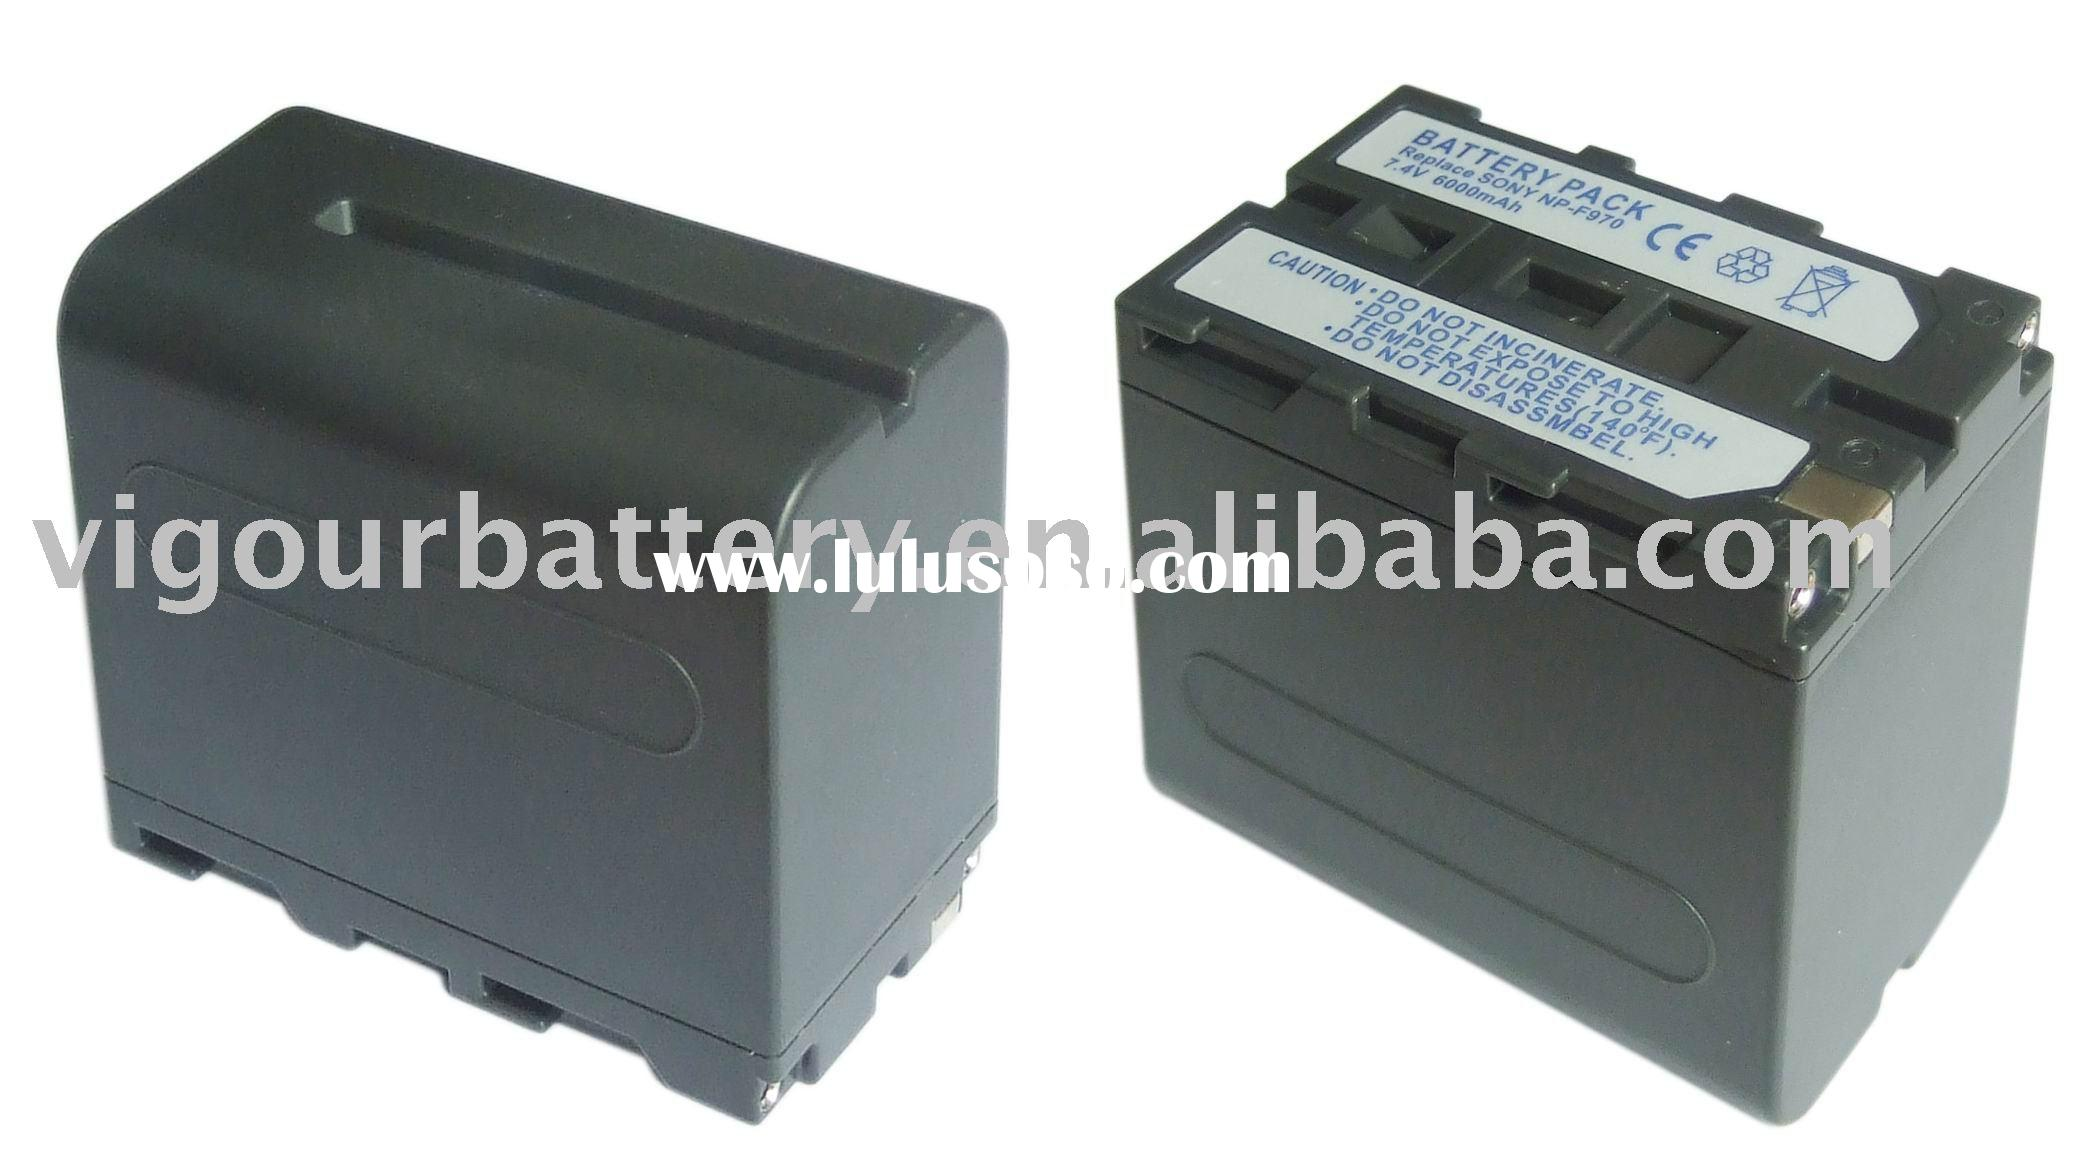 6C Li-Ion 7.4V 6000mAh Rechargeable Battery Pack for Digital Camera Sony NP-F960/F970